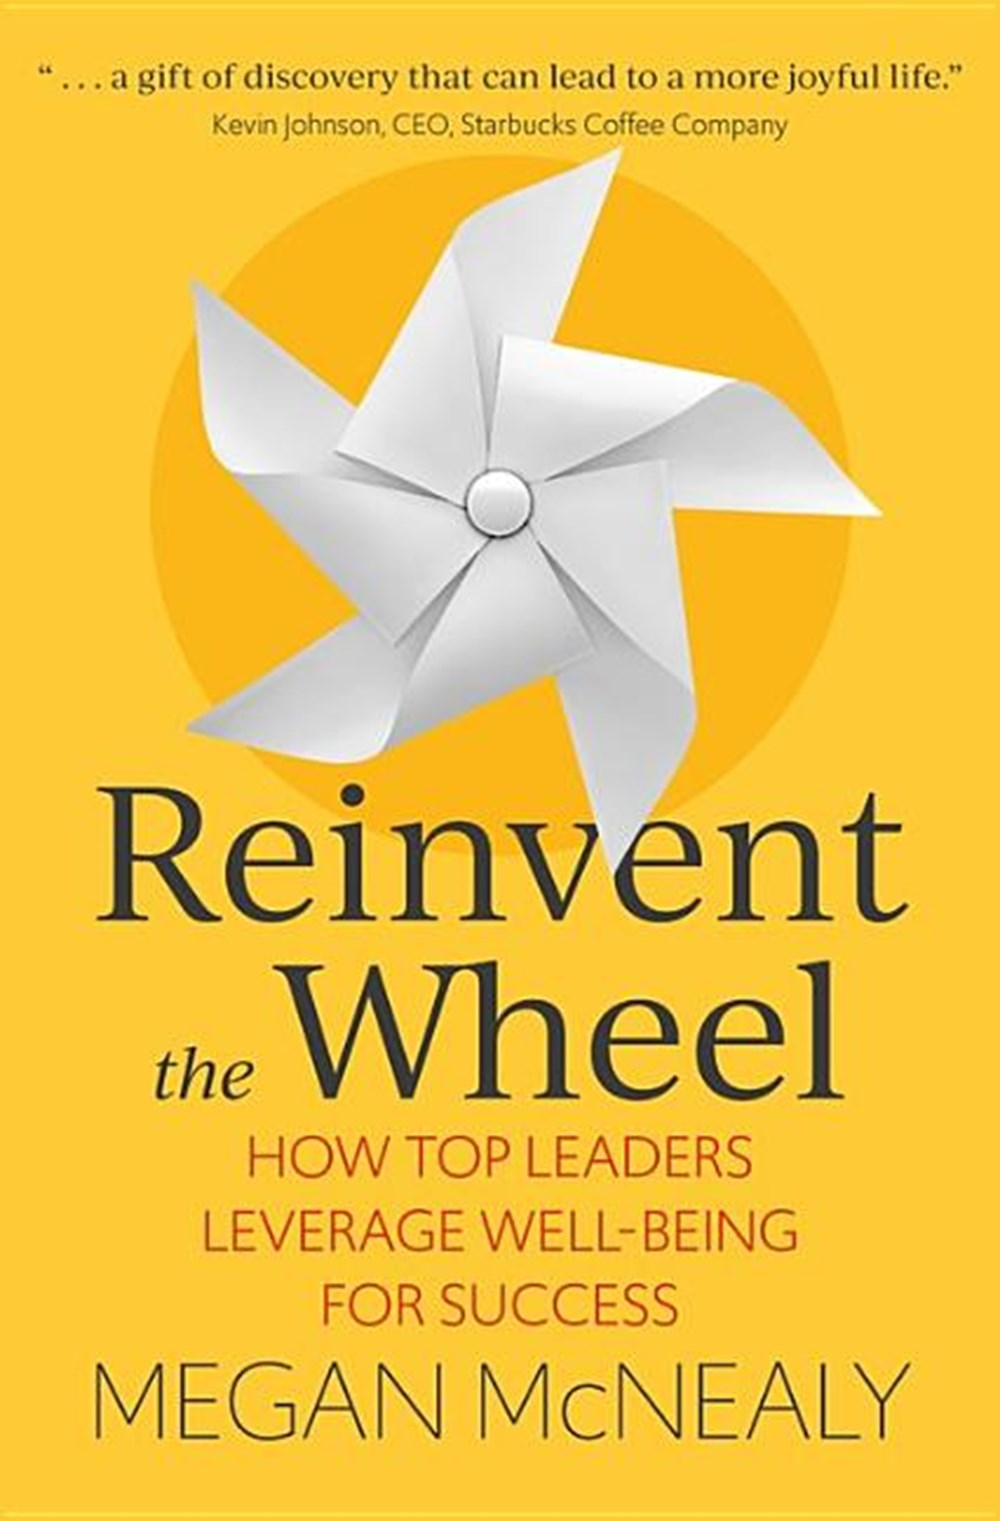 Reinvent the Wheel How Top Leaders Leverage Well-Being for Success